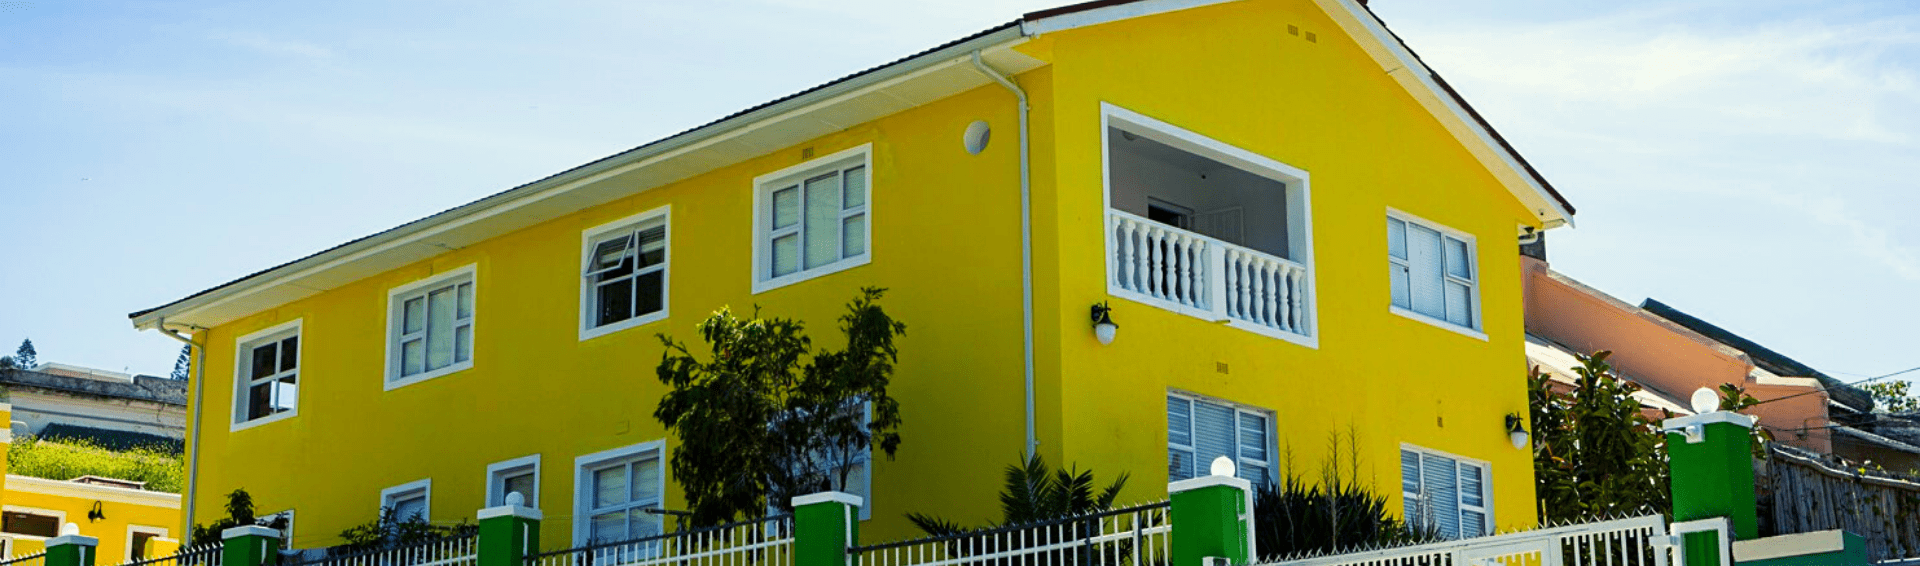 The Yellow House 1920x566